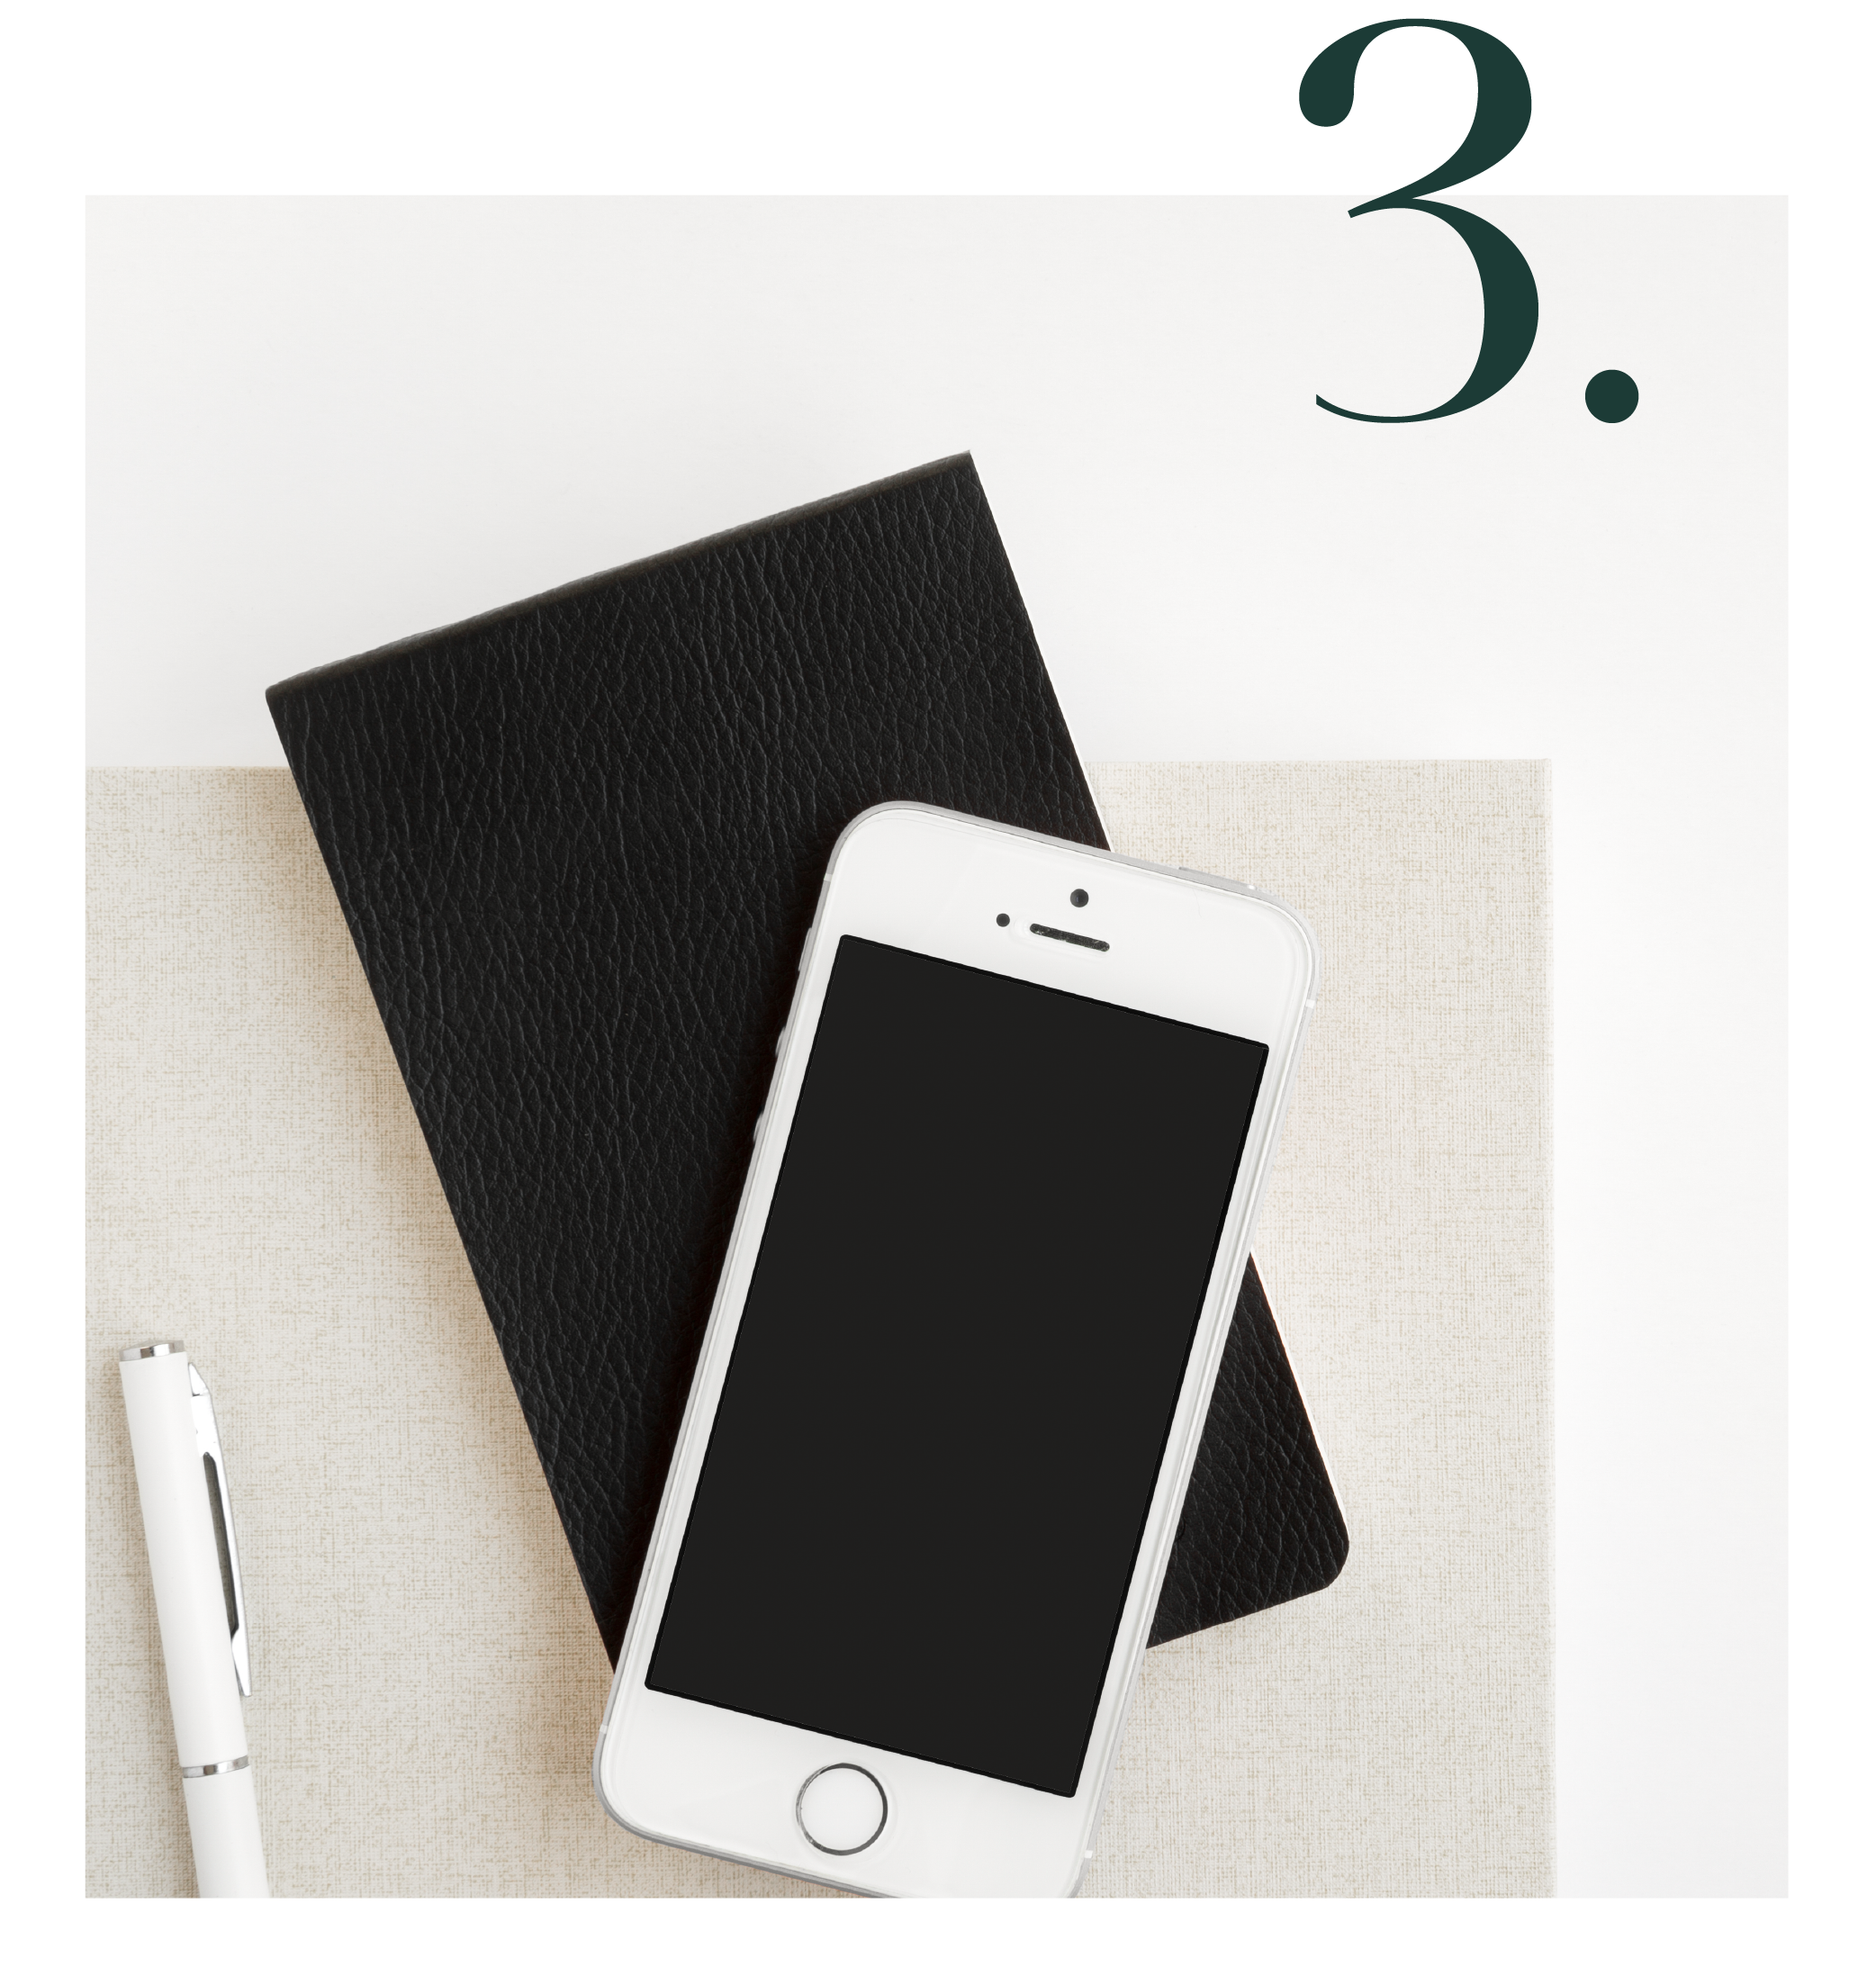 Graphic shows a phone on top of a black notebook and a white pen with the number 3 on top of the image to signify the 3rd service offered by Salt Design Co.